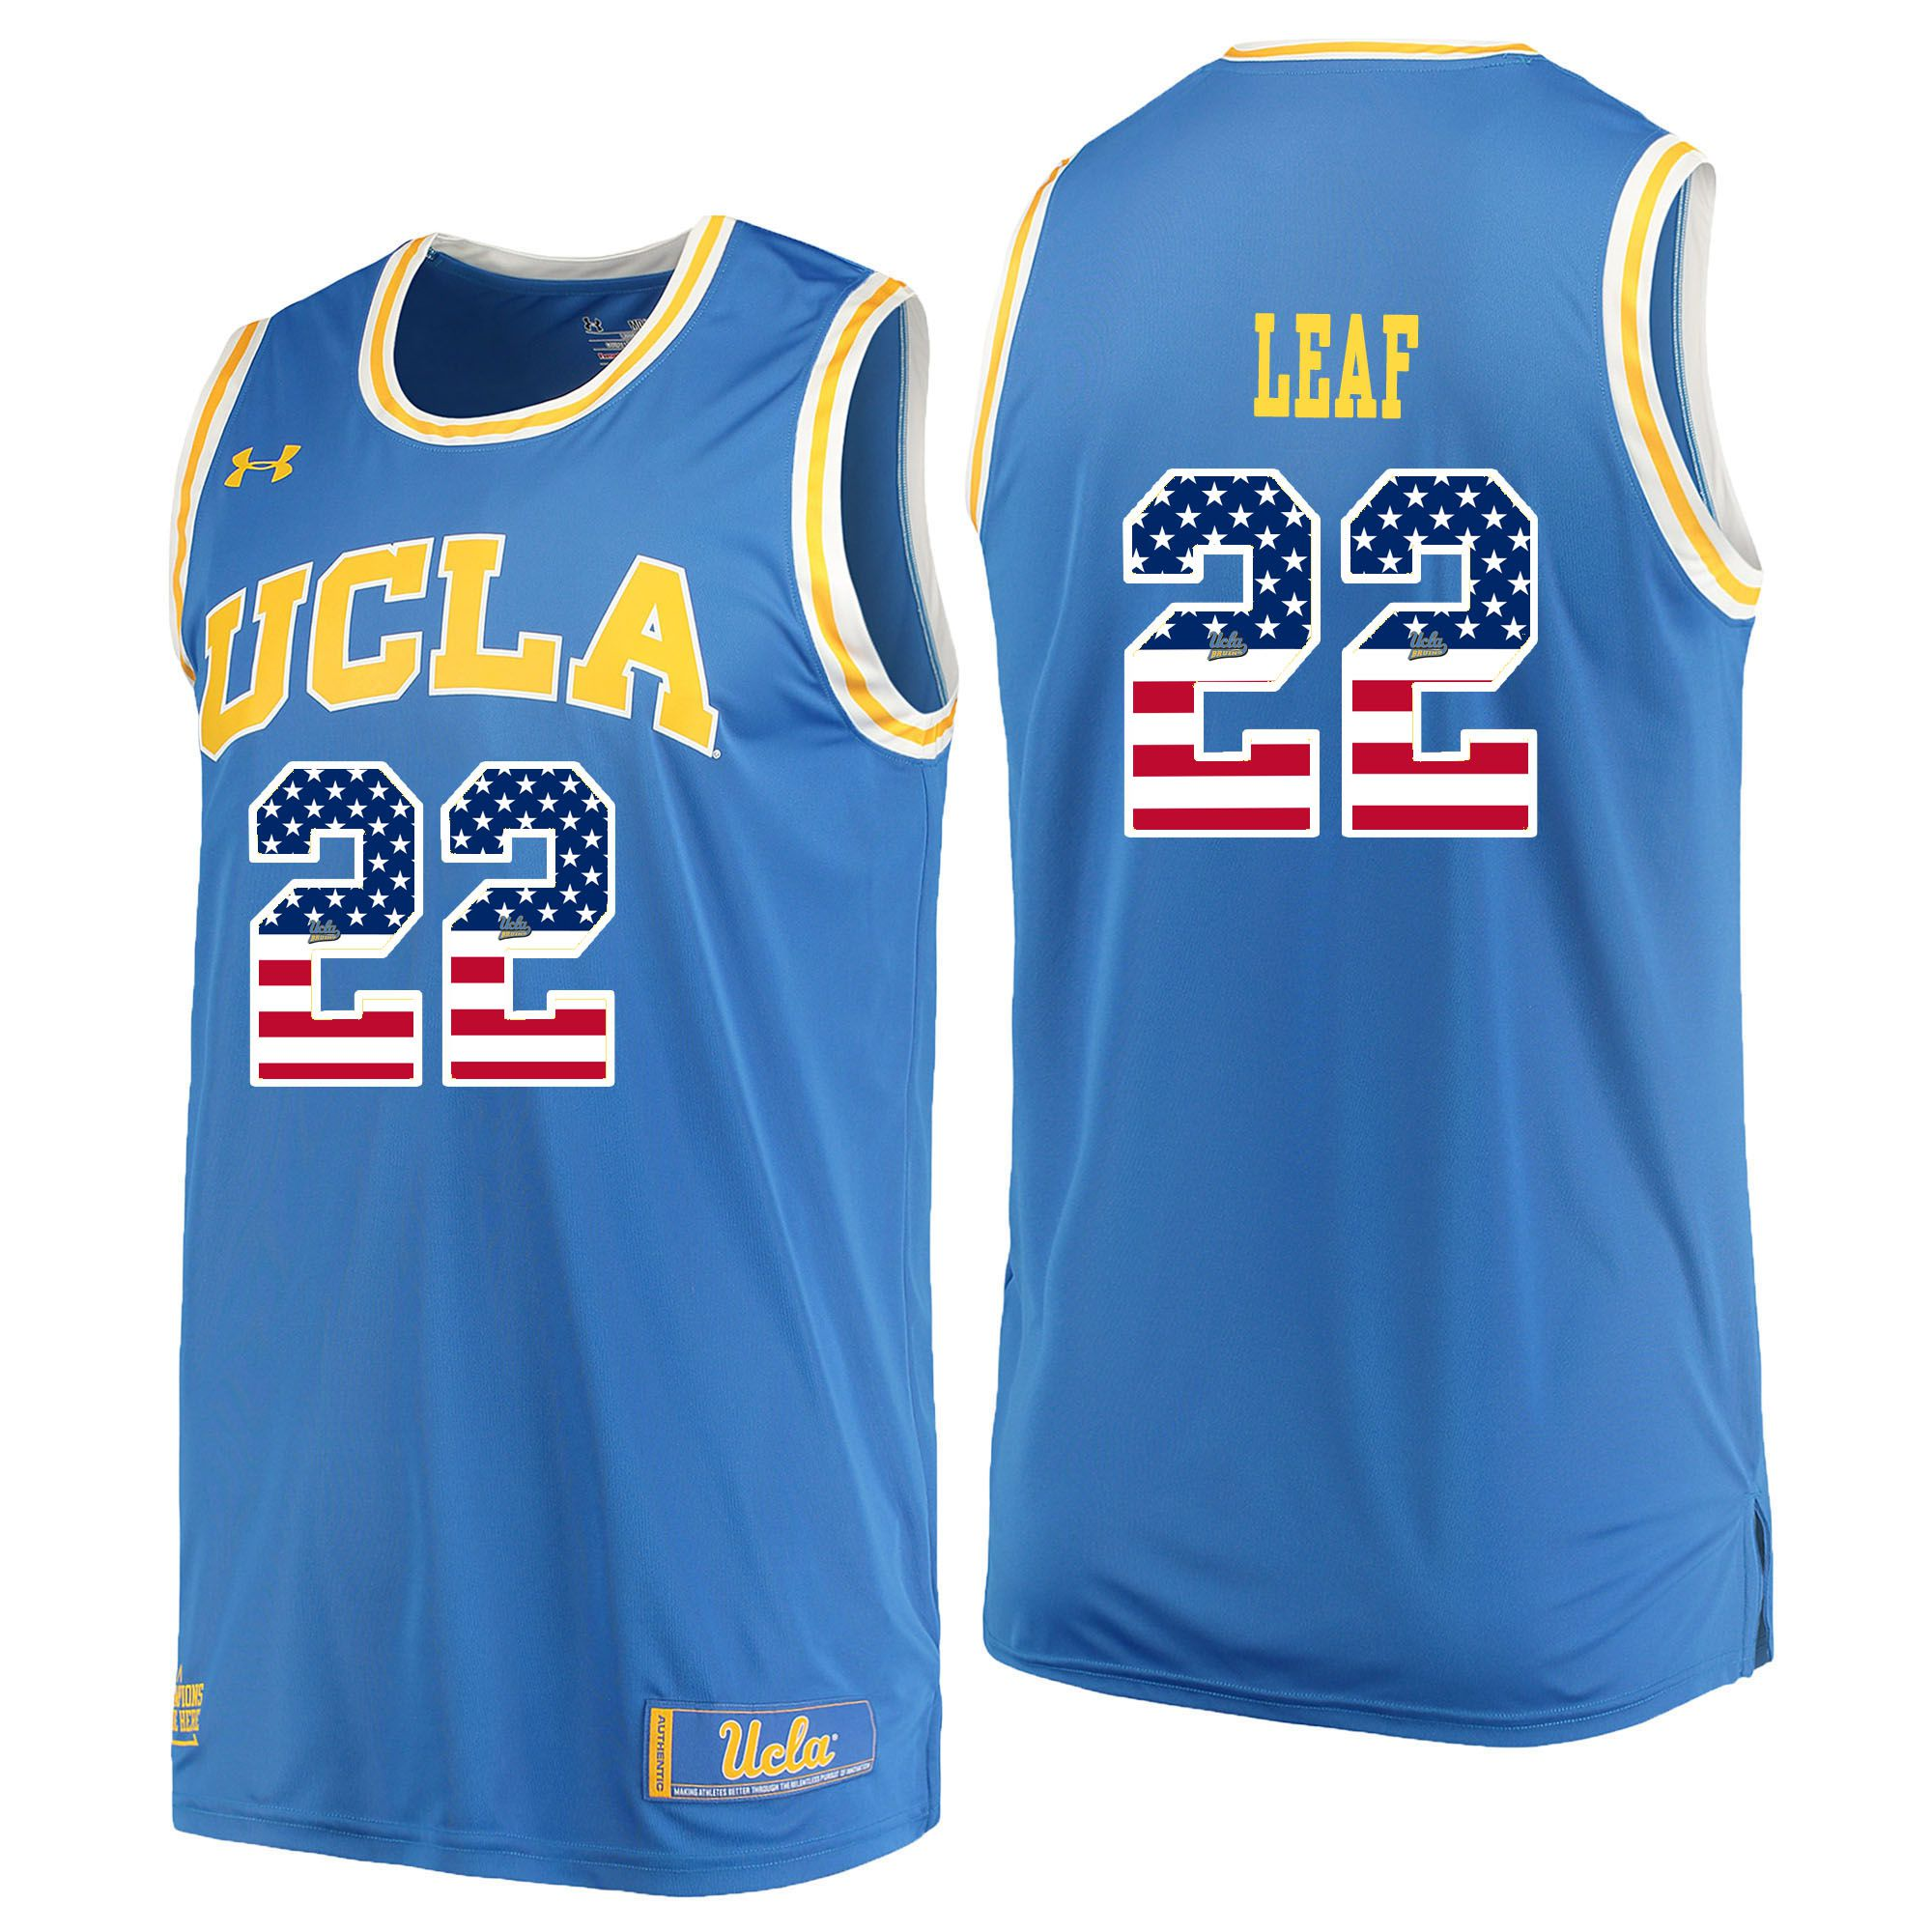 Men UCLA UA 22 Leaf Light Blue Flag Customized NCAA Jerseys